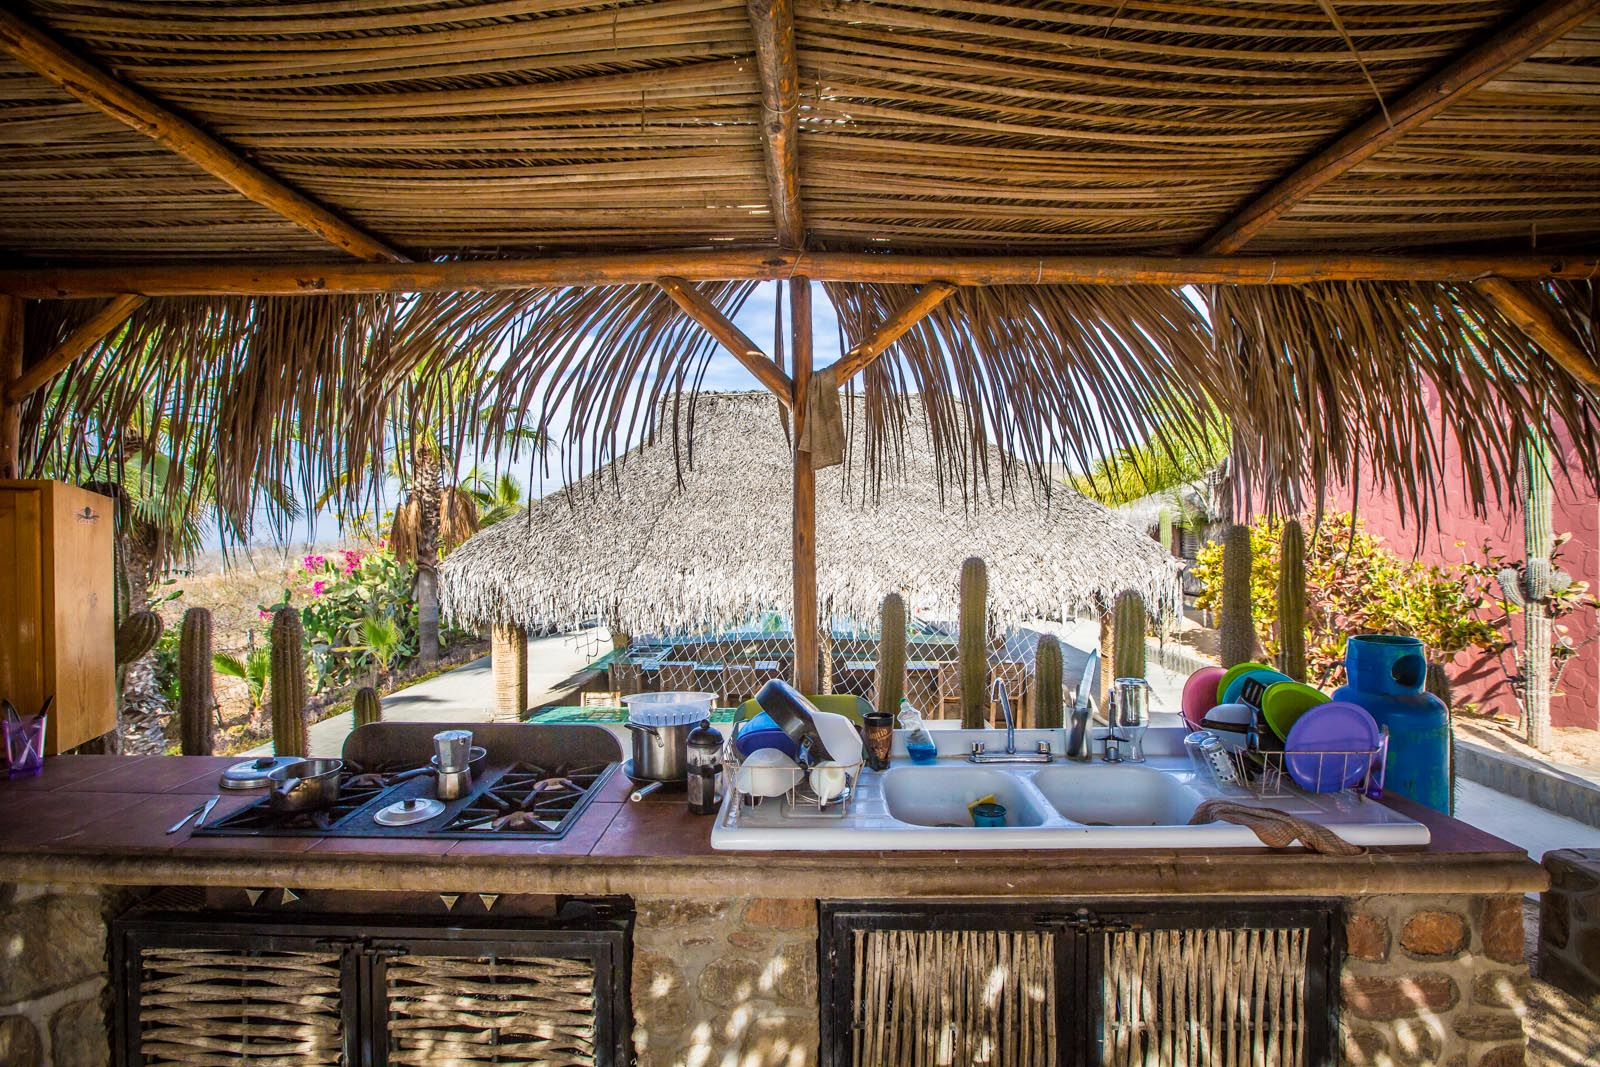 Open air kitchen at the surf camp goes right along with the BYOB and bartender swim-up pool bar.